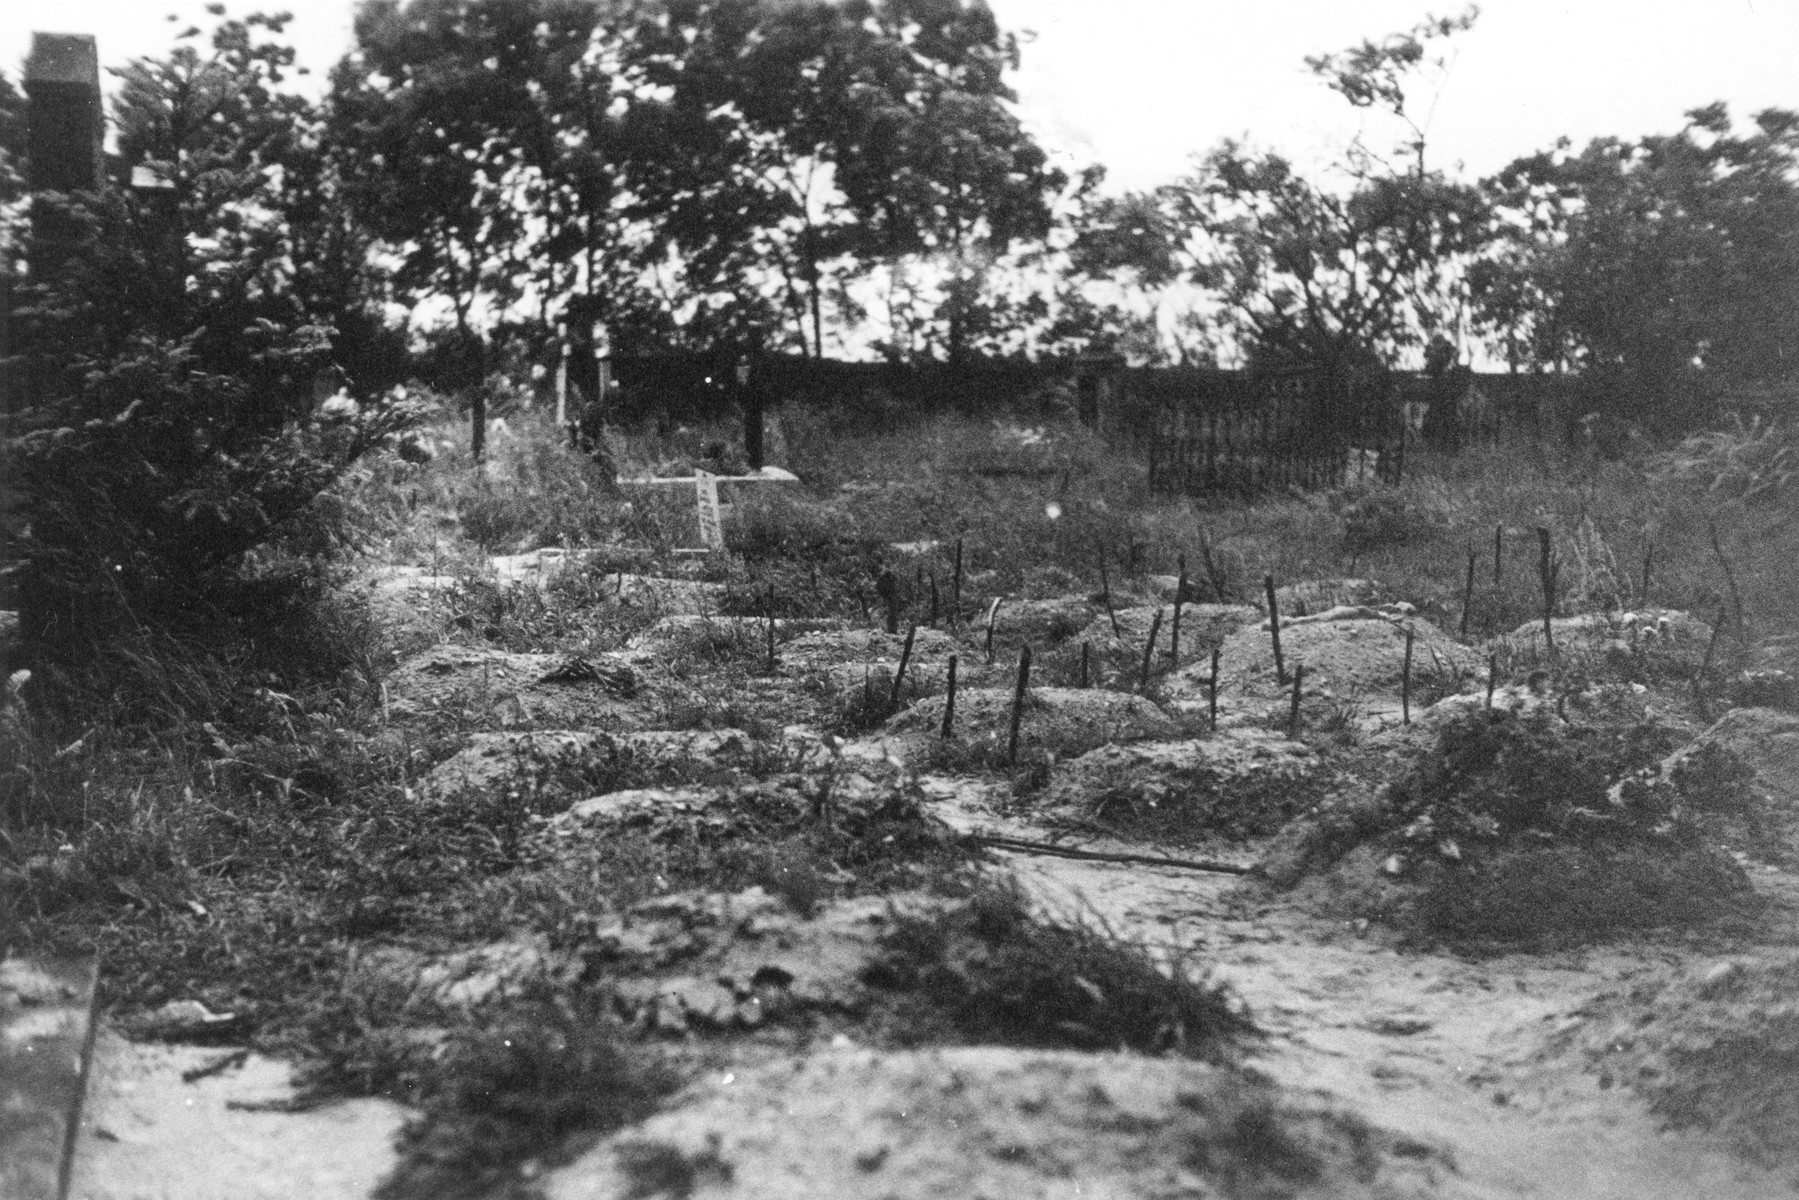 The burial ground for the Polish and Soviet infants who died in the nursery in Ruehen.  Each of the mounds is a mass grave of infants.